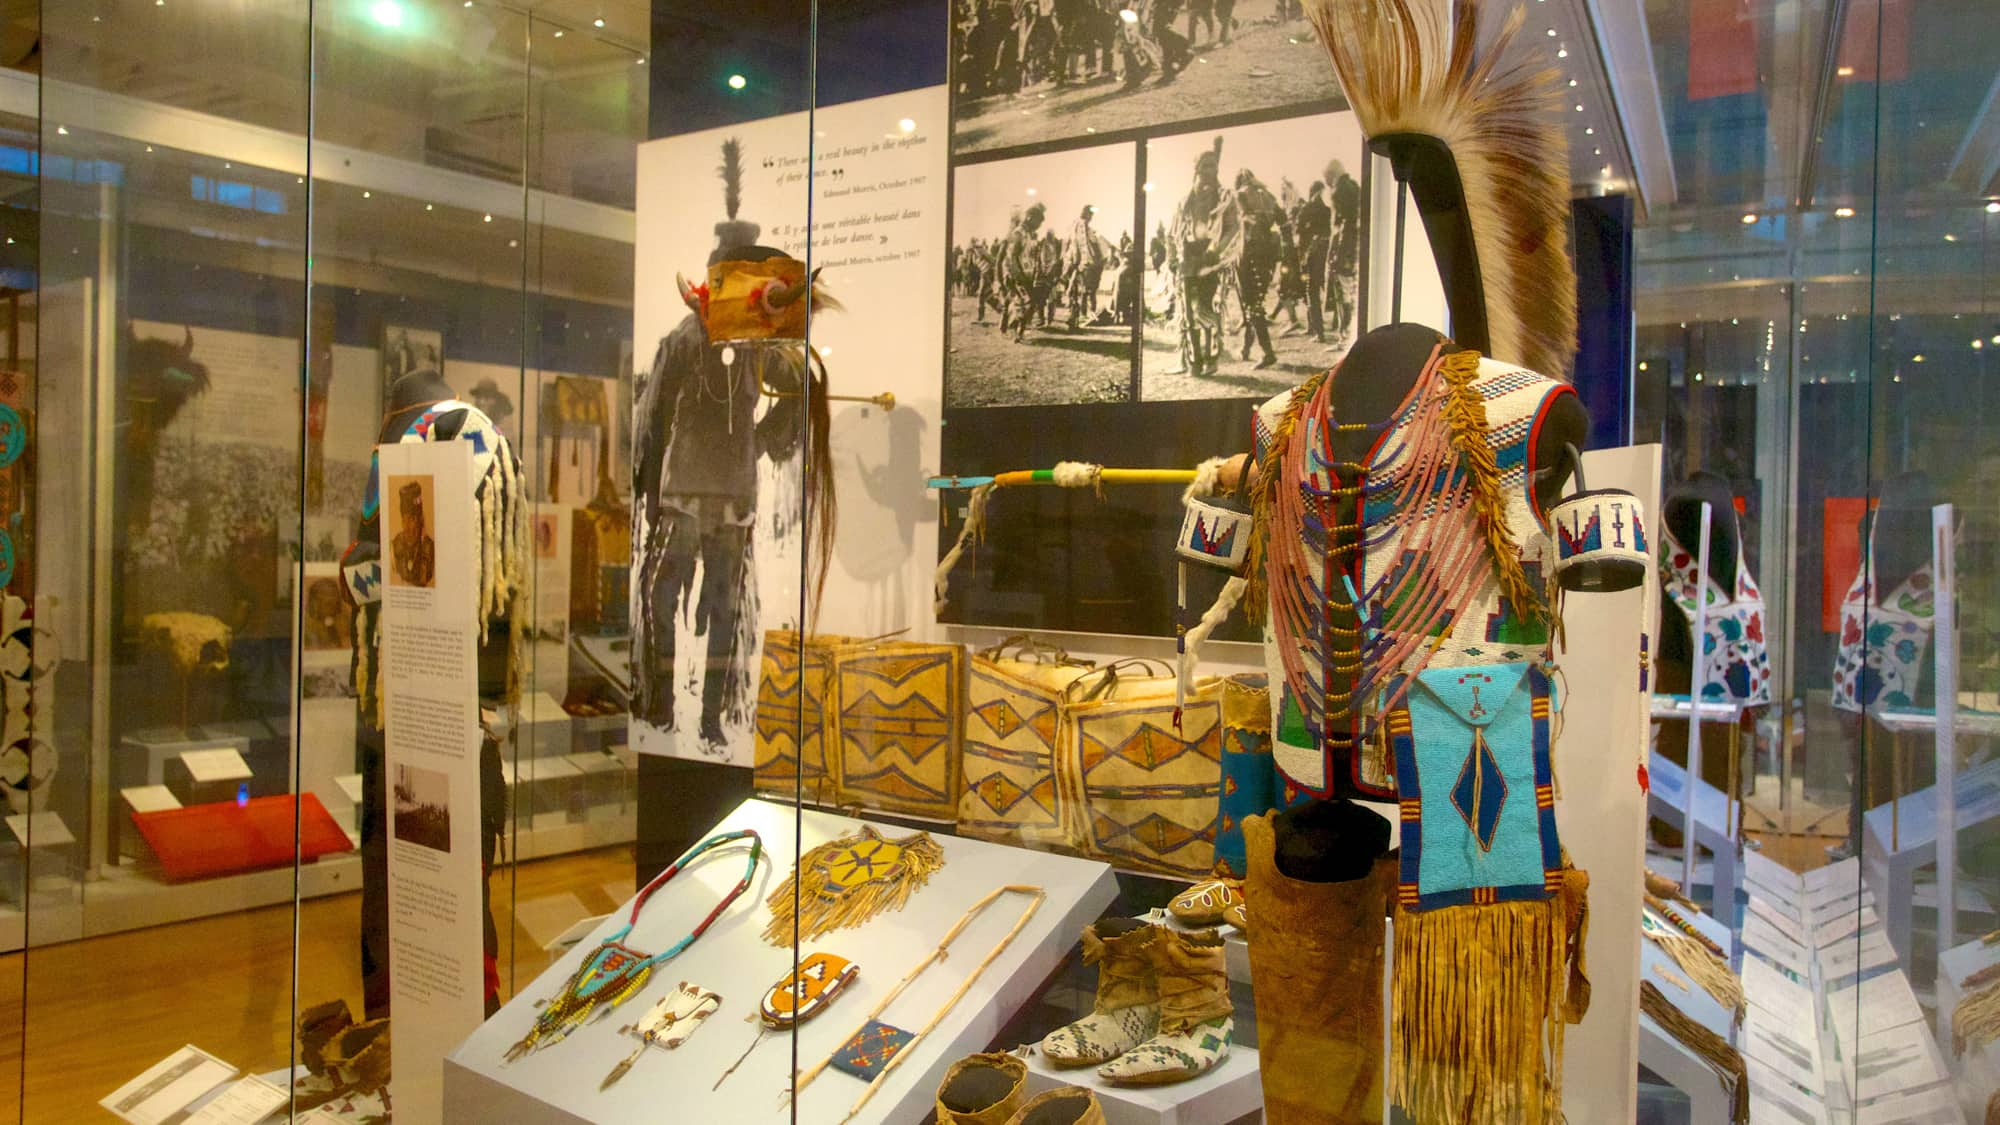 Artifacts at the Royal Ontario Museum in Canada